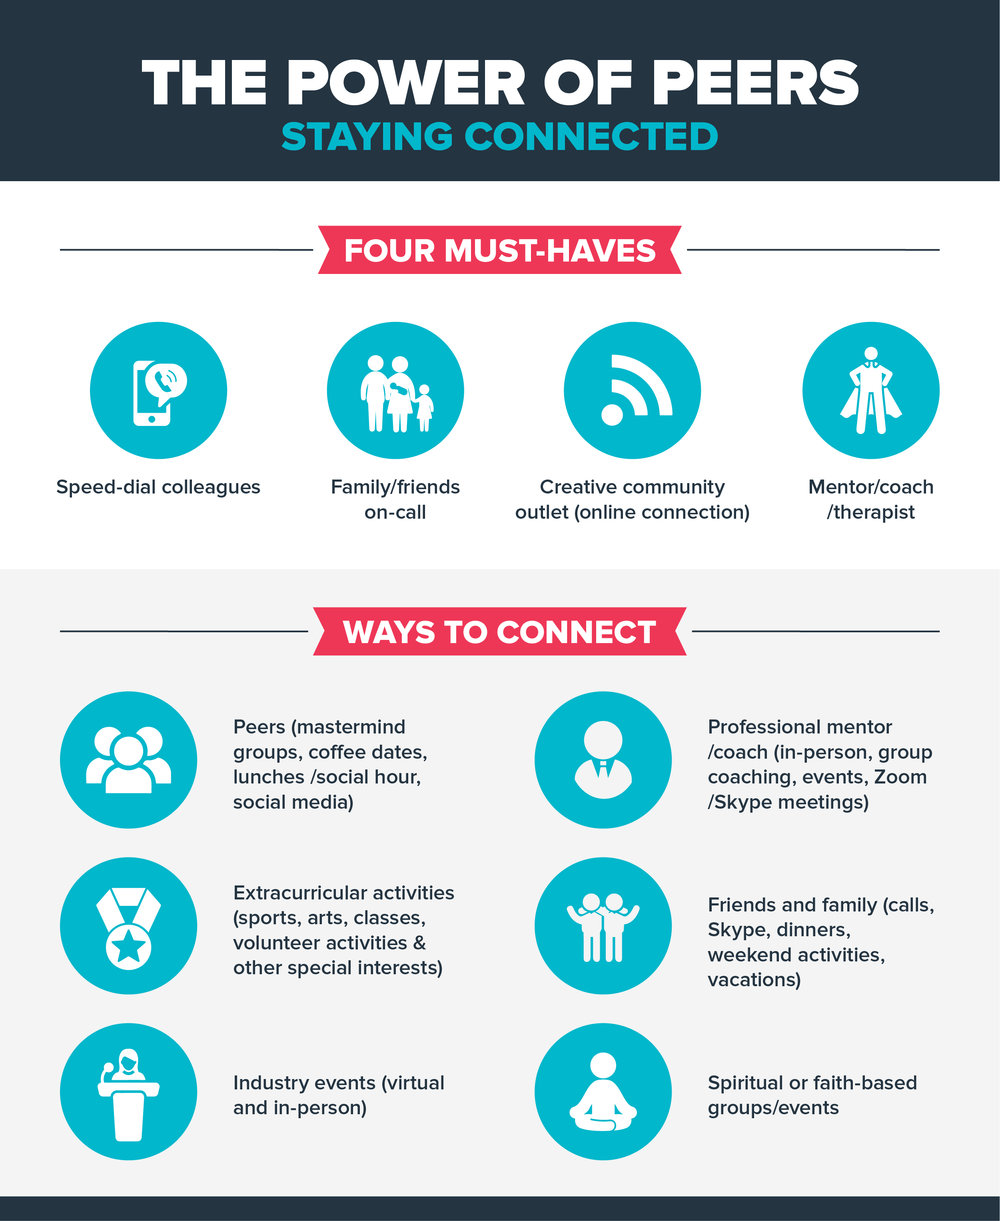 Jillpaider - The Power of Peers - Staying Connected-01.jpg